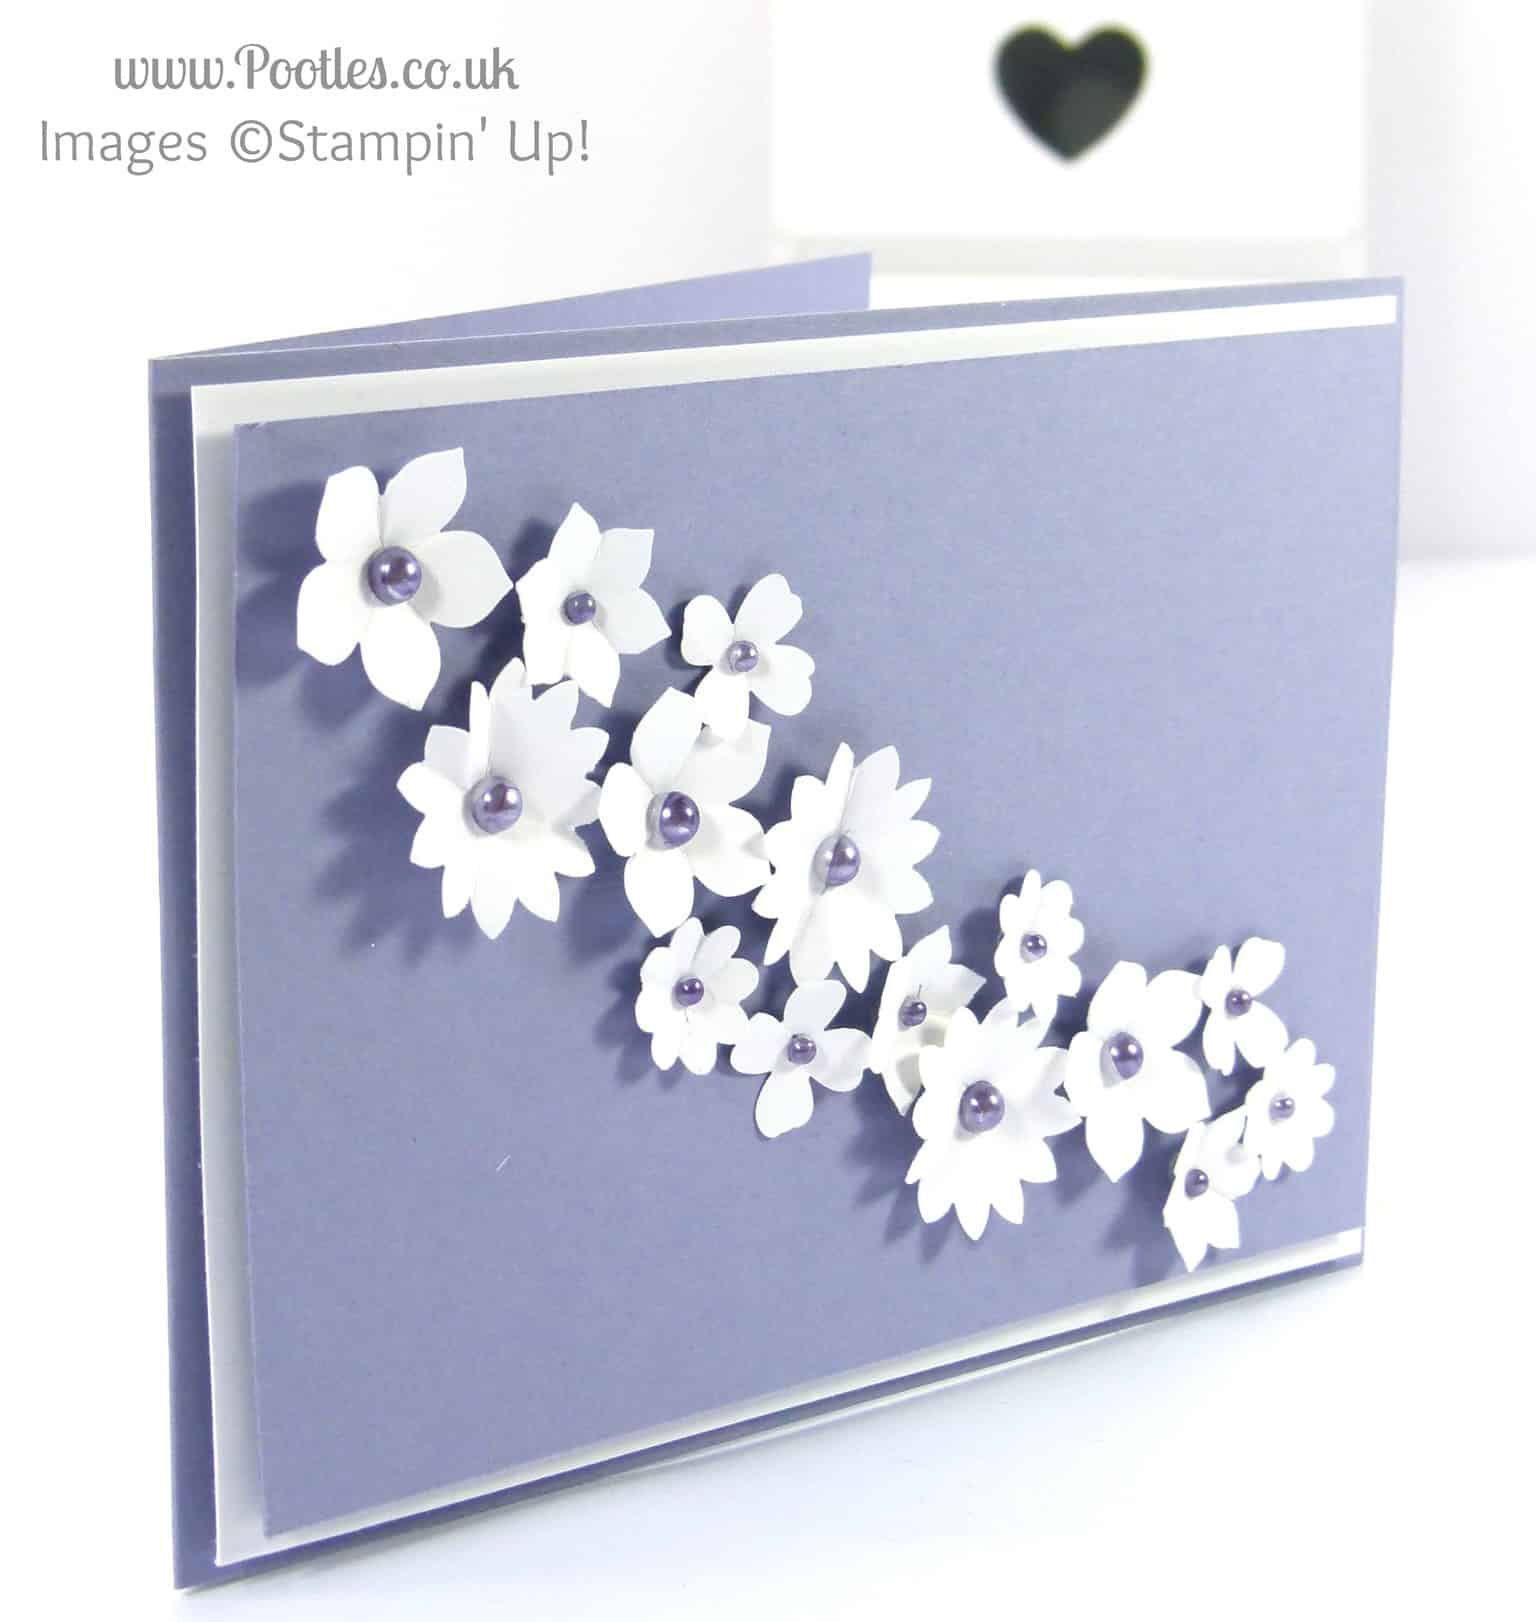 Blendabilities and Pearls on a Wedding Cake Card